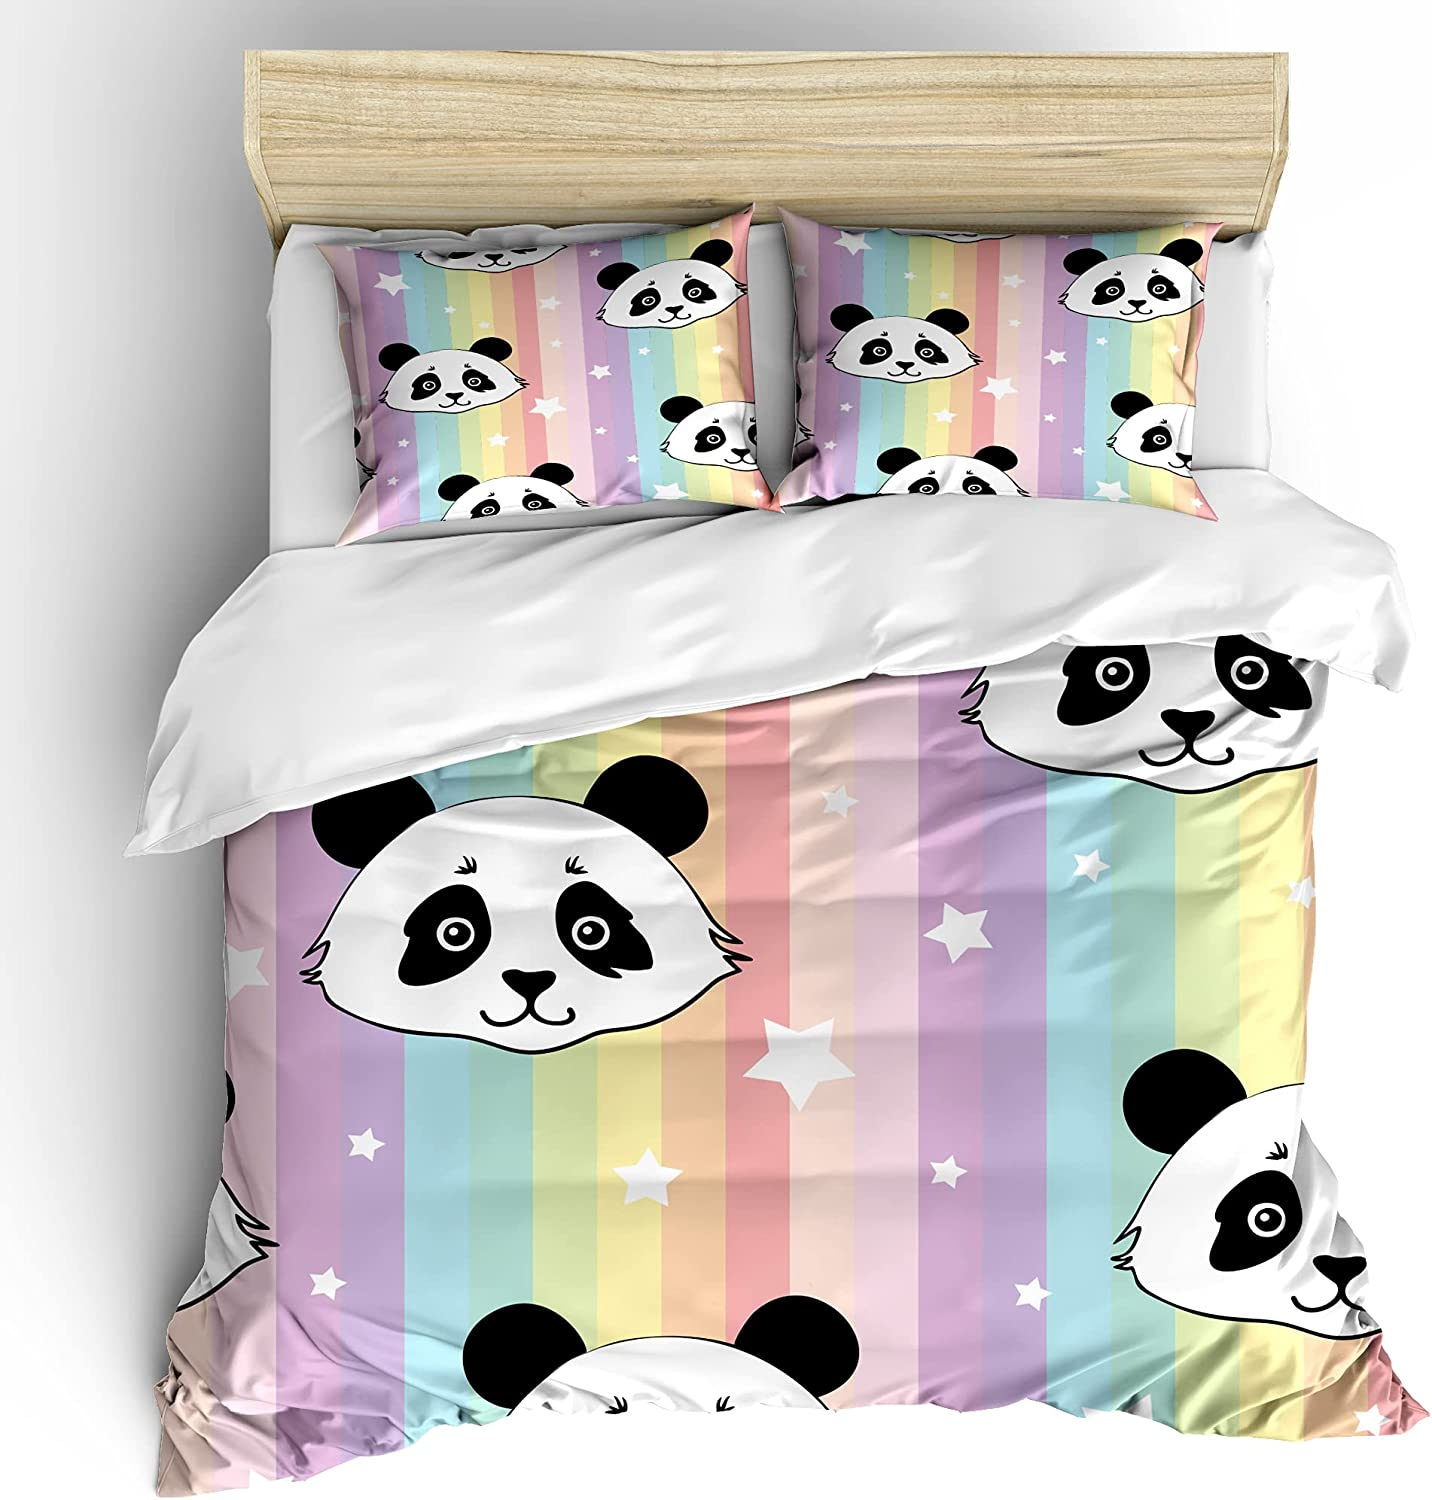 Ormis Cute Panda Seamless Pattern Surprise price King Comforter 3 Size NEW before selling Cover Pi